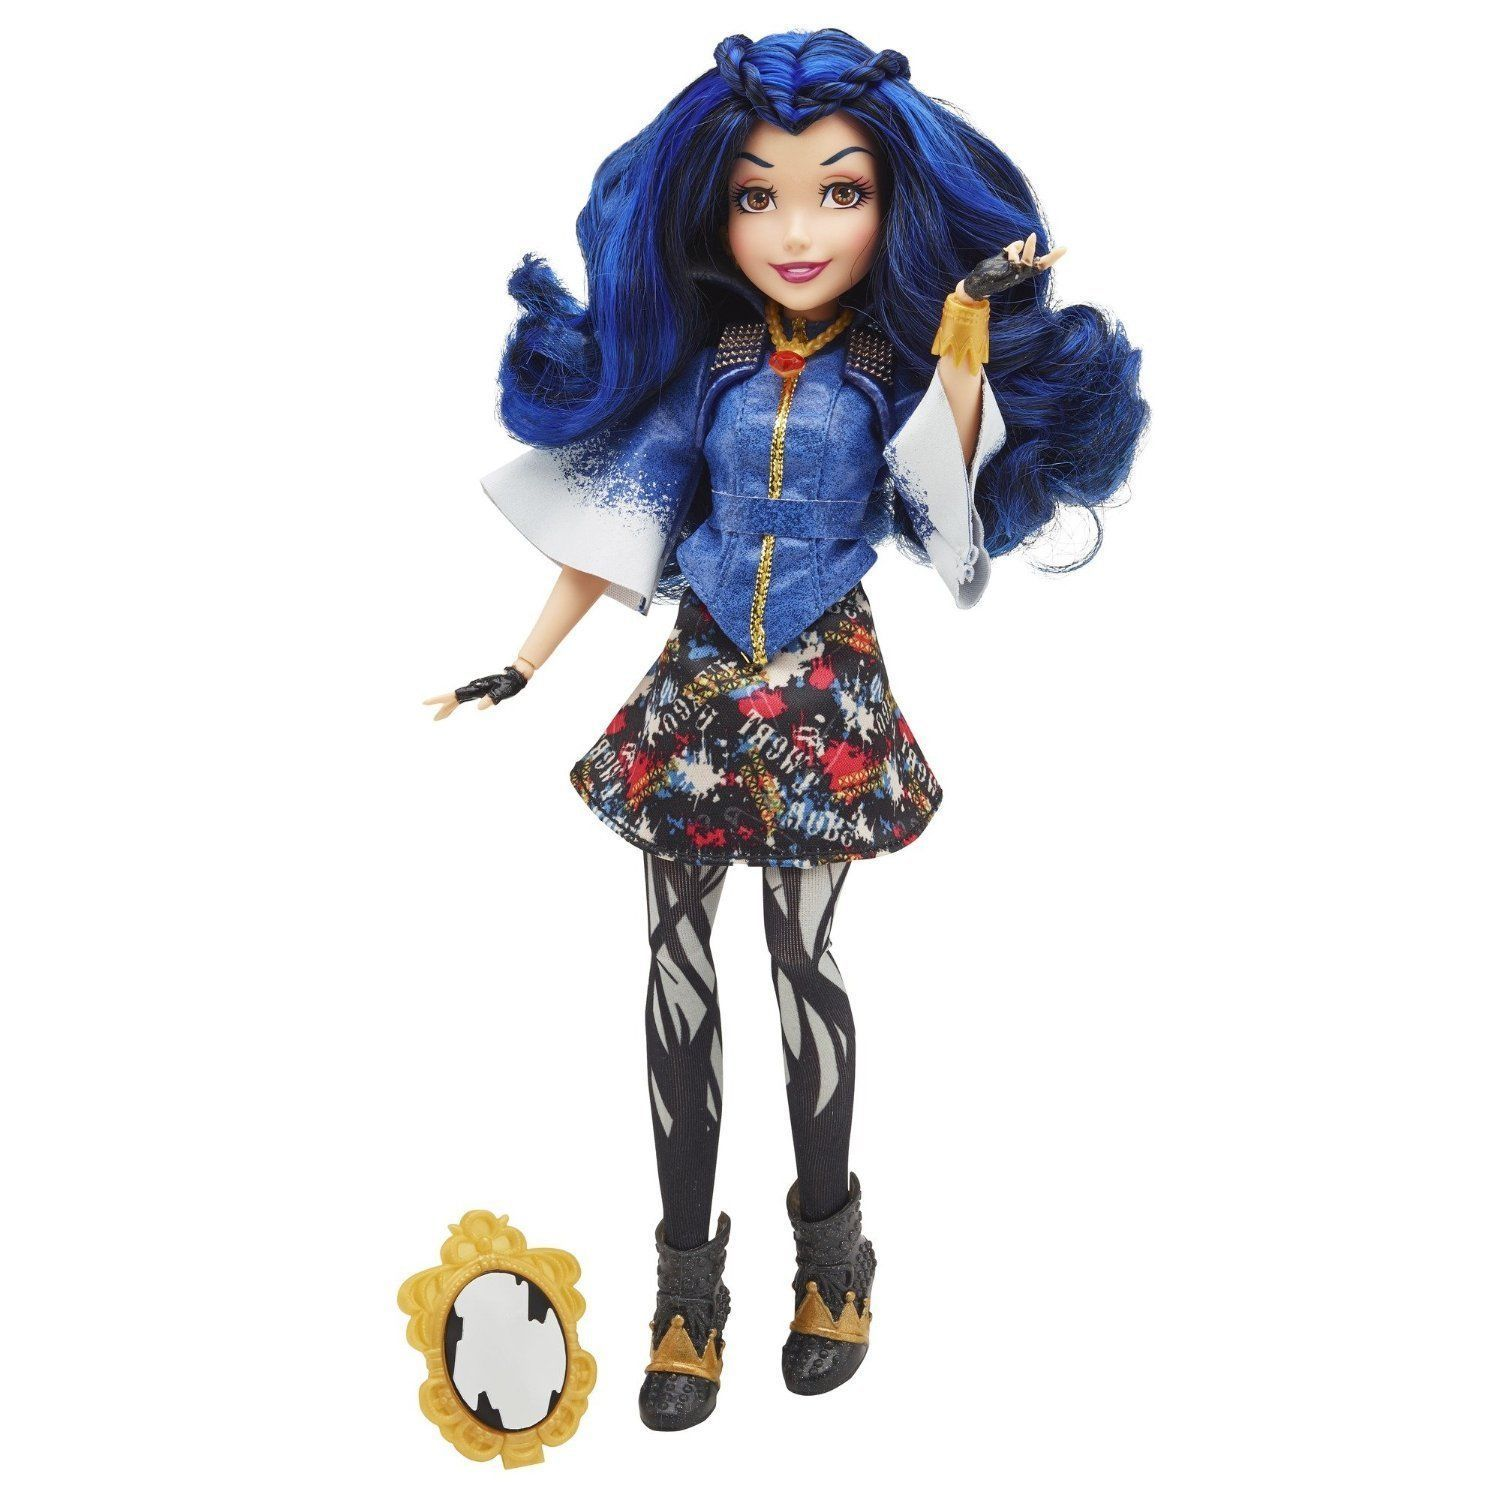 Disney Descendants Villain Signature Evie Doll in Blue and Red, Hasbro, 6+